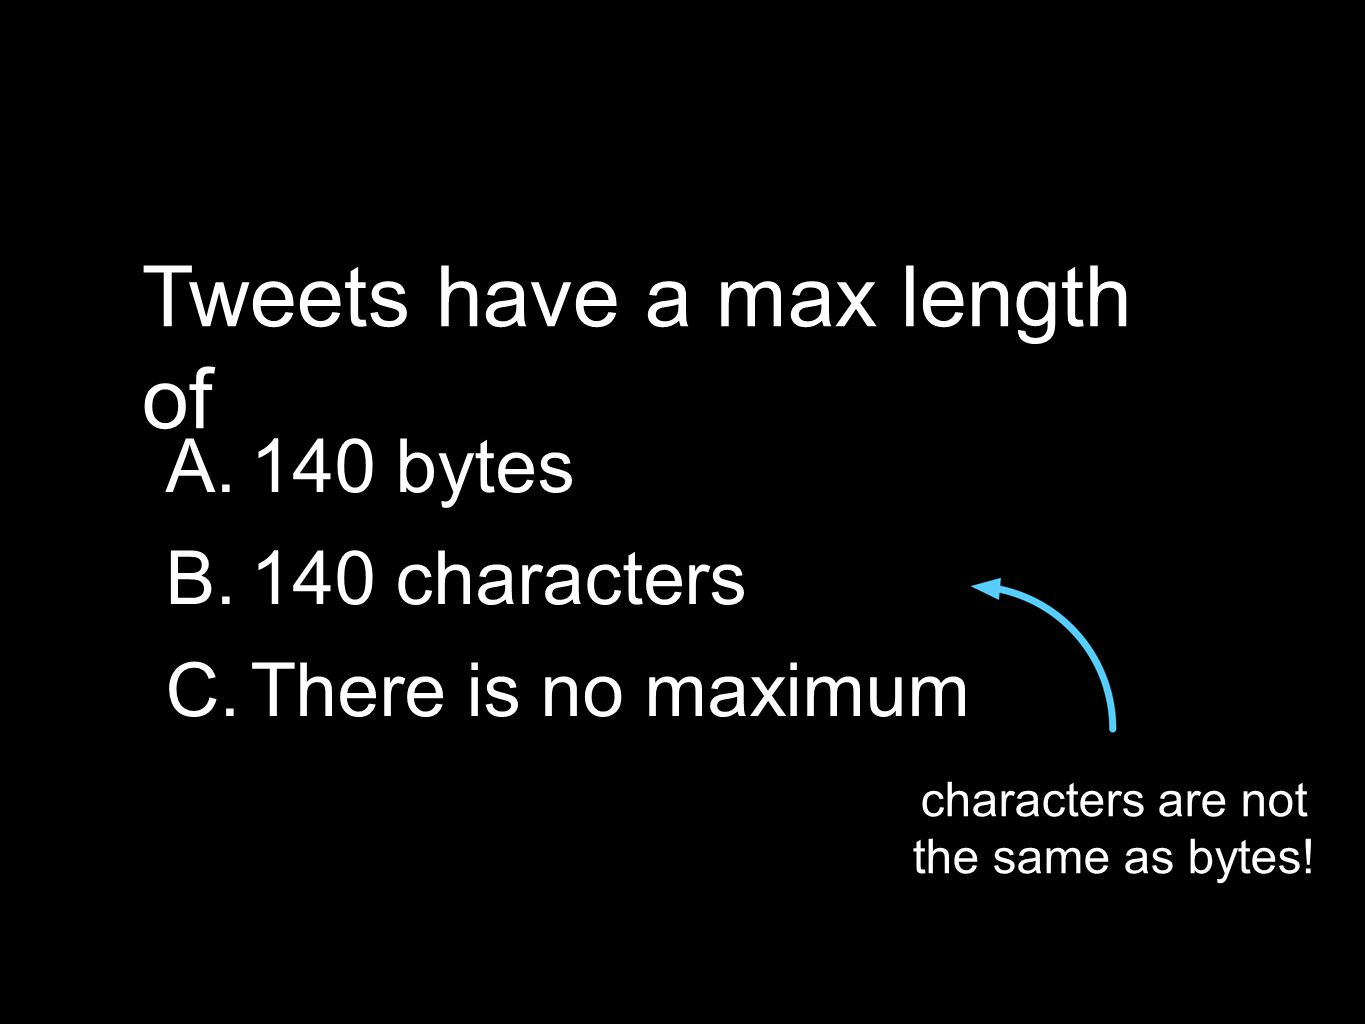 Tweets have a max length of A.140 bytes B.140 characters C.There is no maximum characters are not the same as bytes!